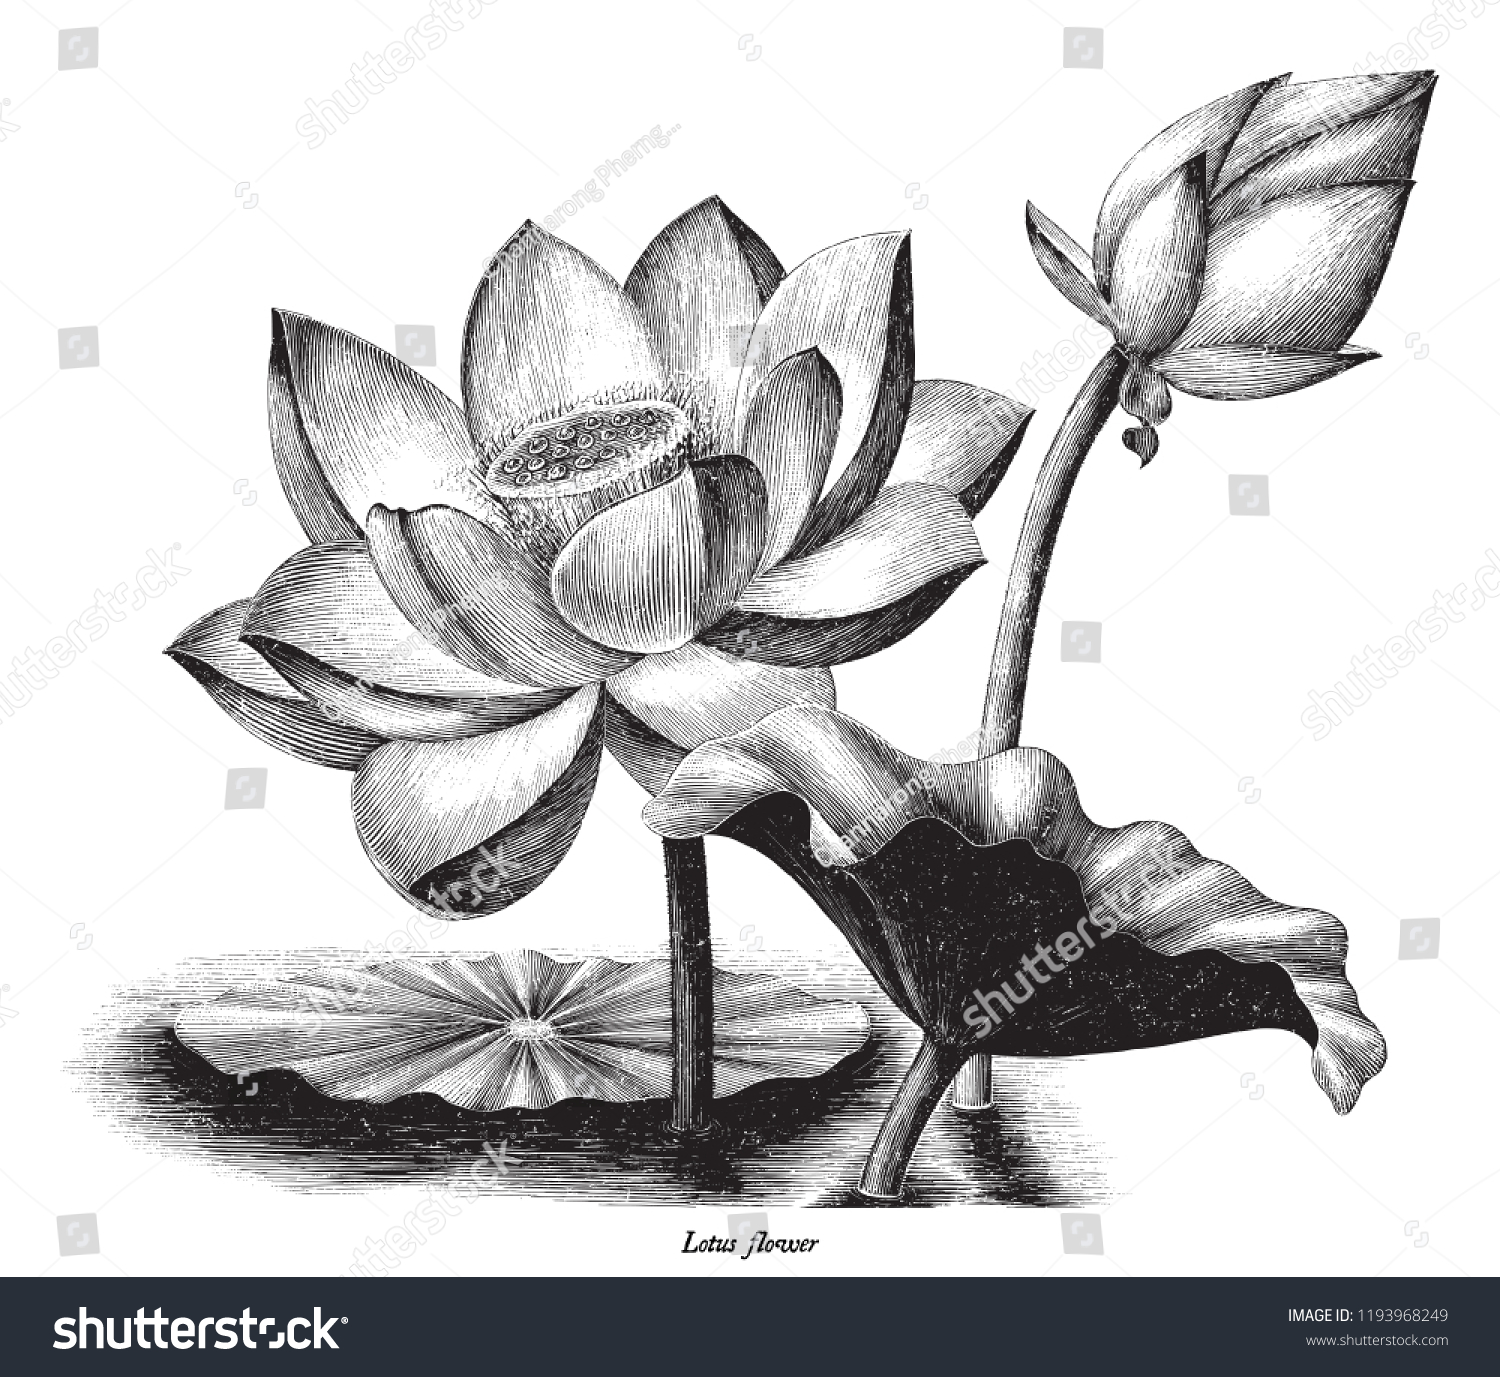 Lotus Flower Botanical Vintage Engraving Illustration Stock Vector